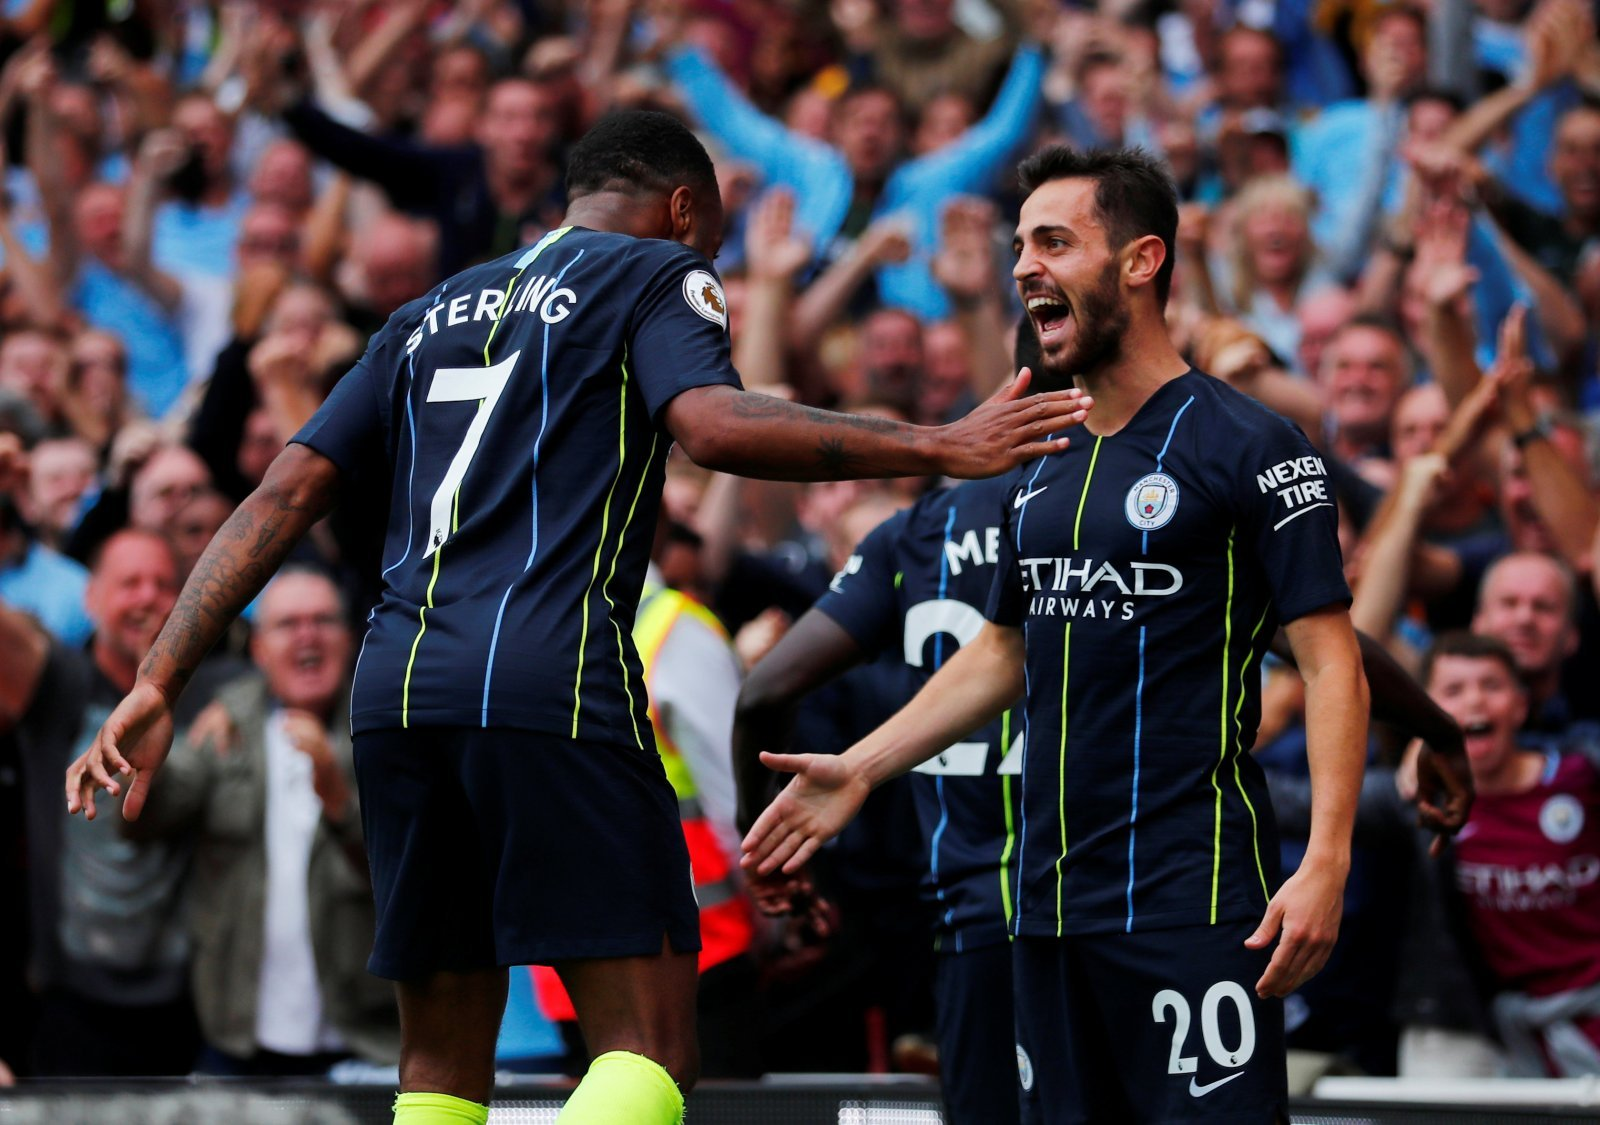 Man City have already proven why they will retain the Premier League title this season